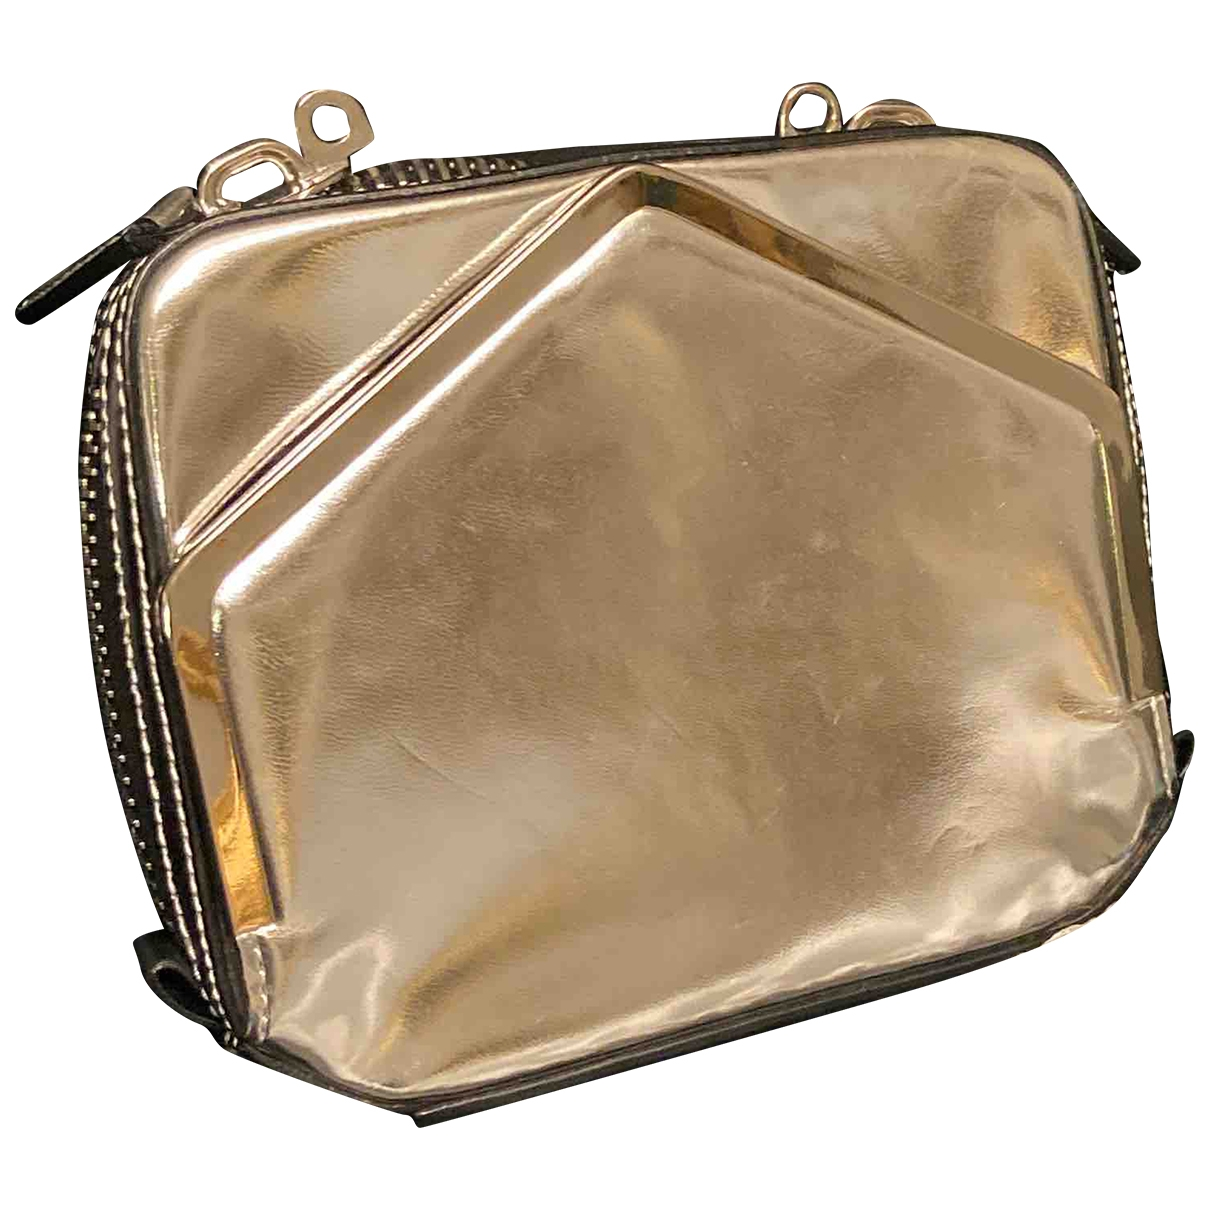 Alexander Wang \N Silver Leather Clutch bag for Women \N